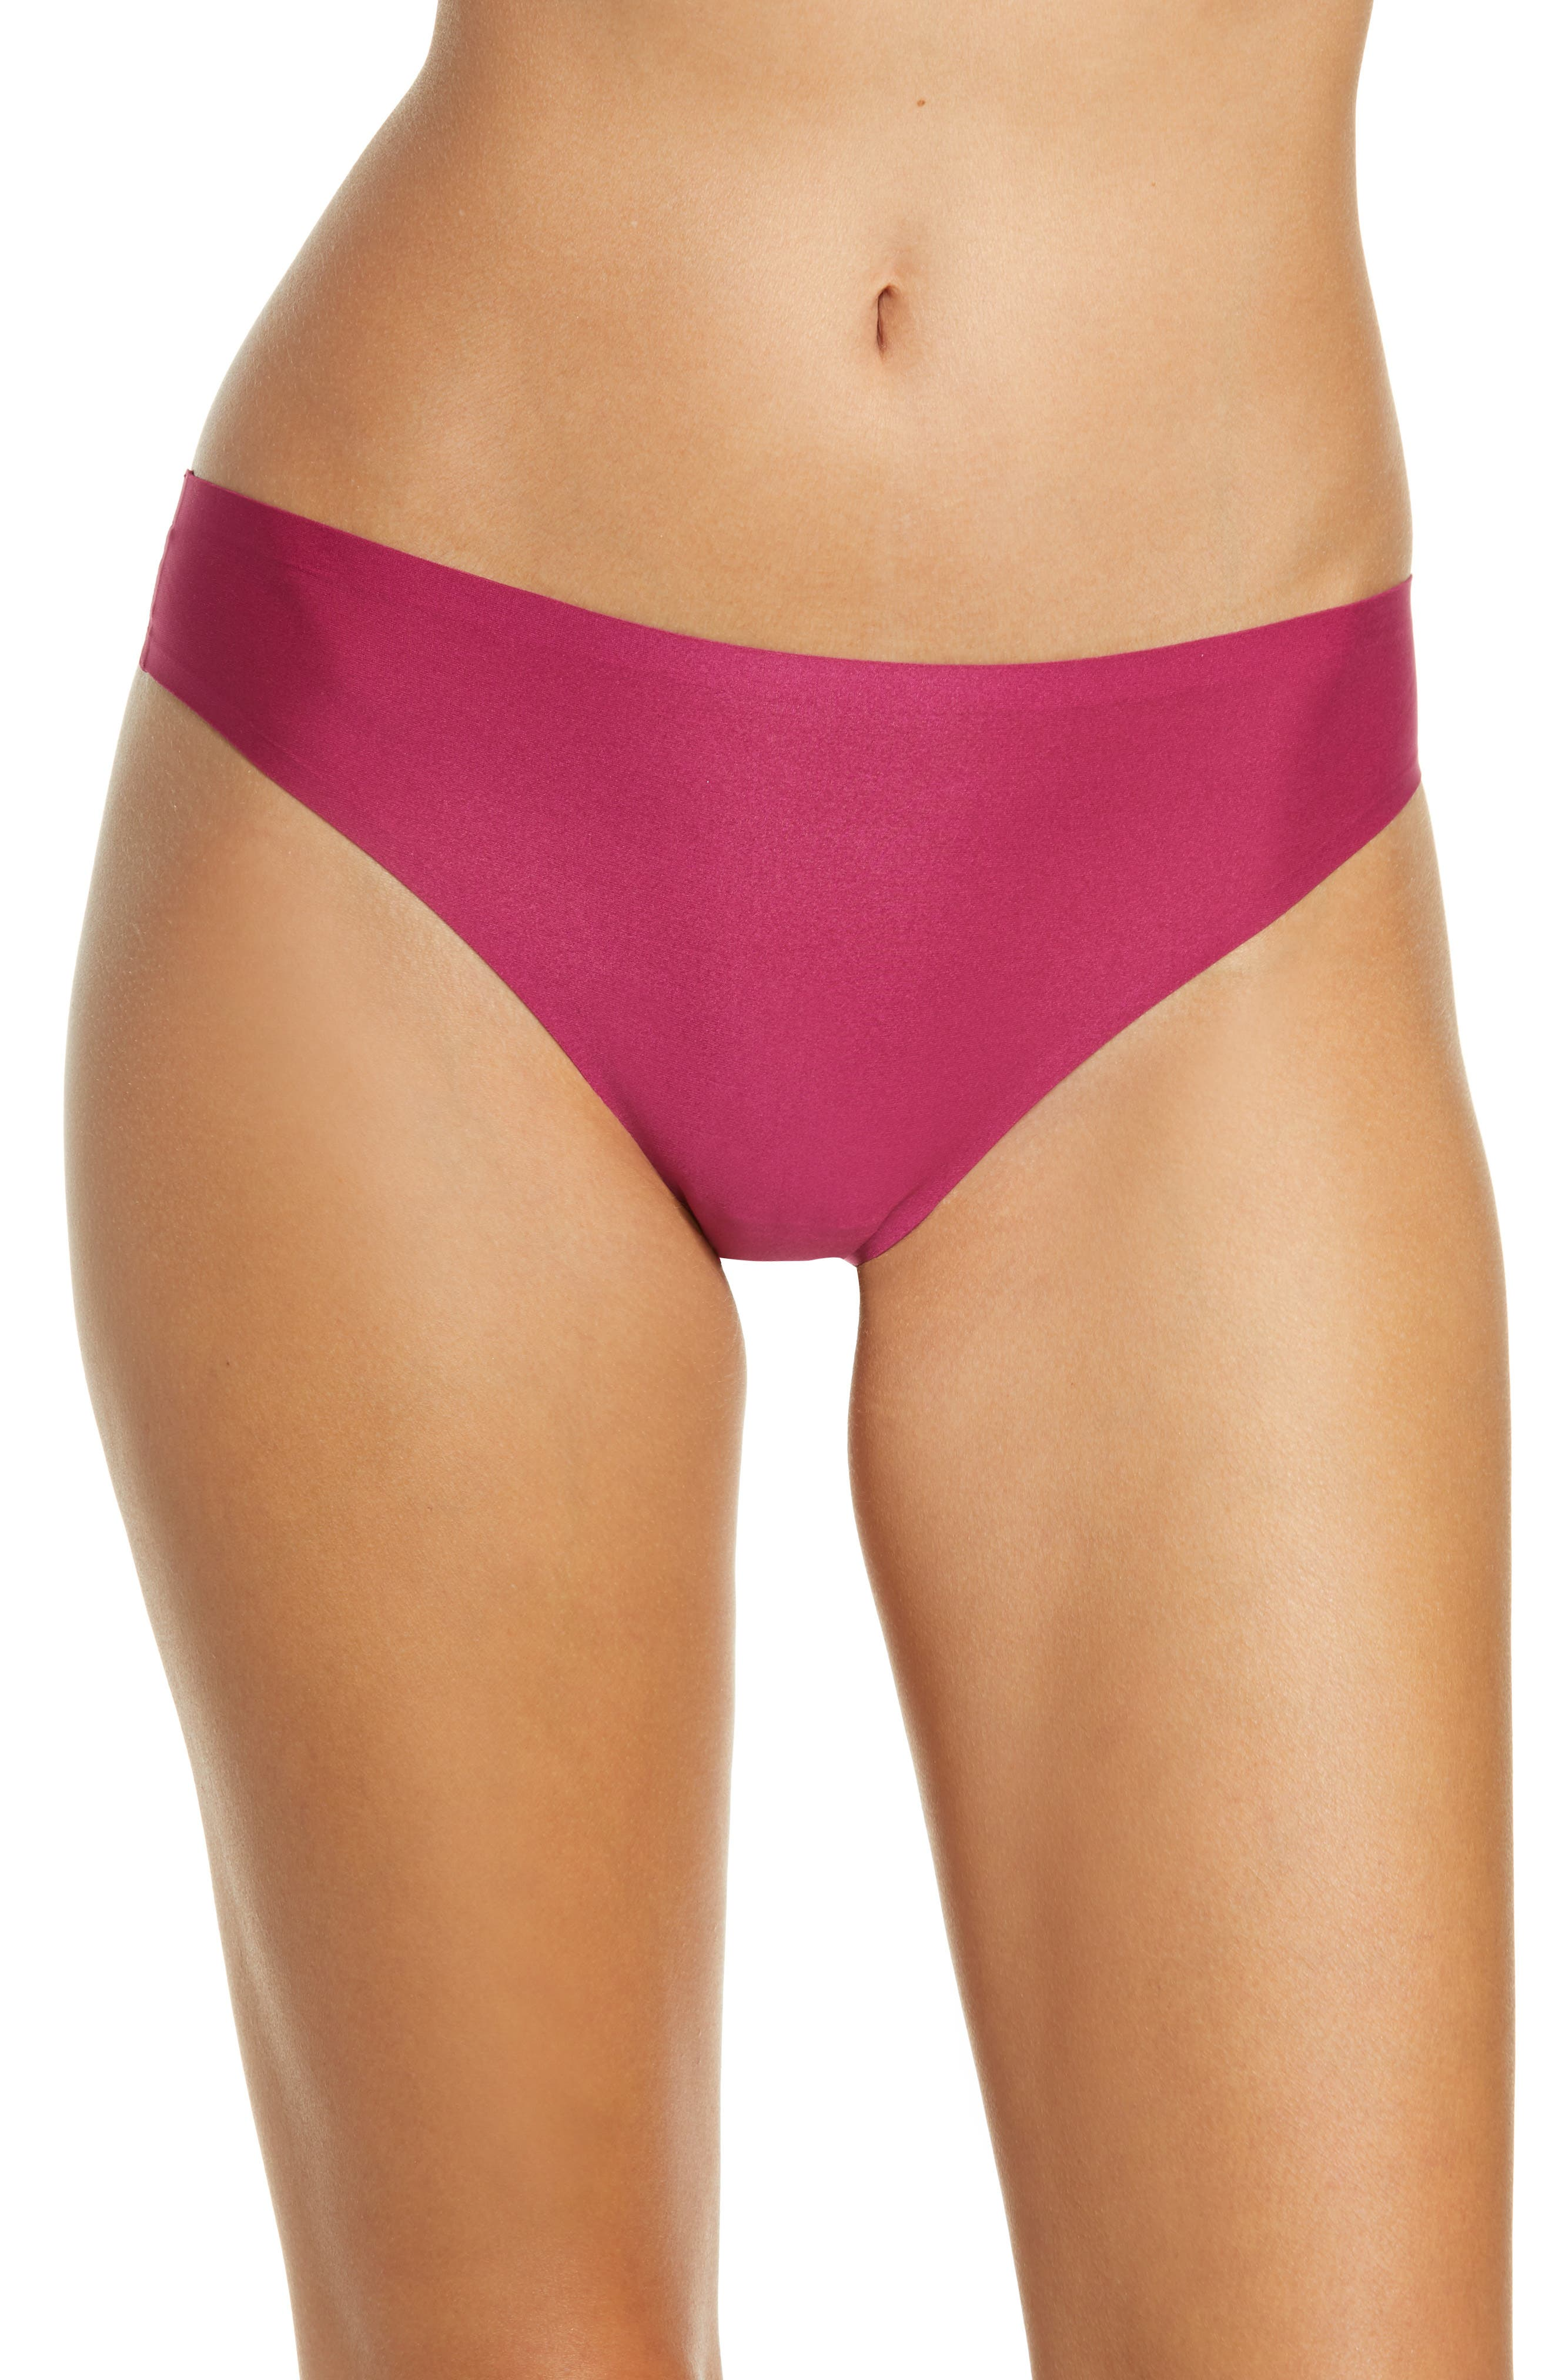 Get a line-free look without sacrificing comfort in this soft, stretchy thong cut with clean edges that disappear beneath clothes. Style Name: Chantelle Lingerie Soft Stretch Thong (Buy More & Save). Style Number: 5410886. Available in stores.